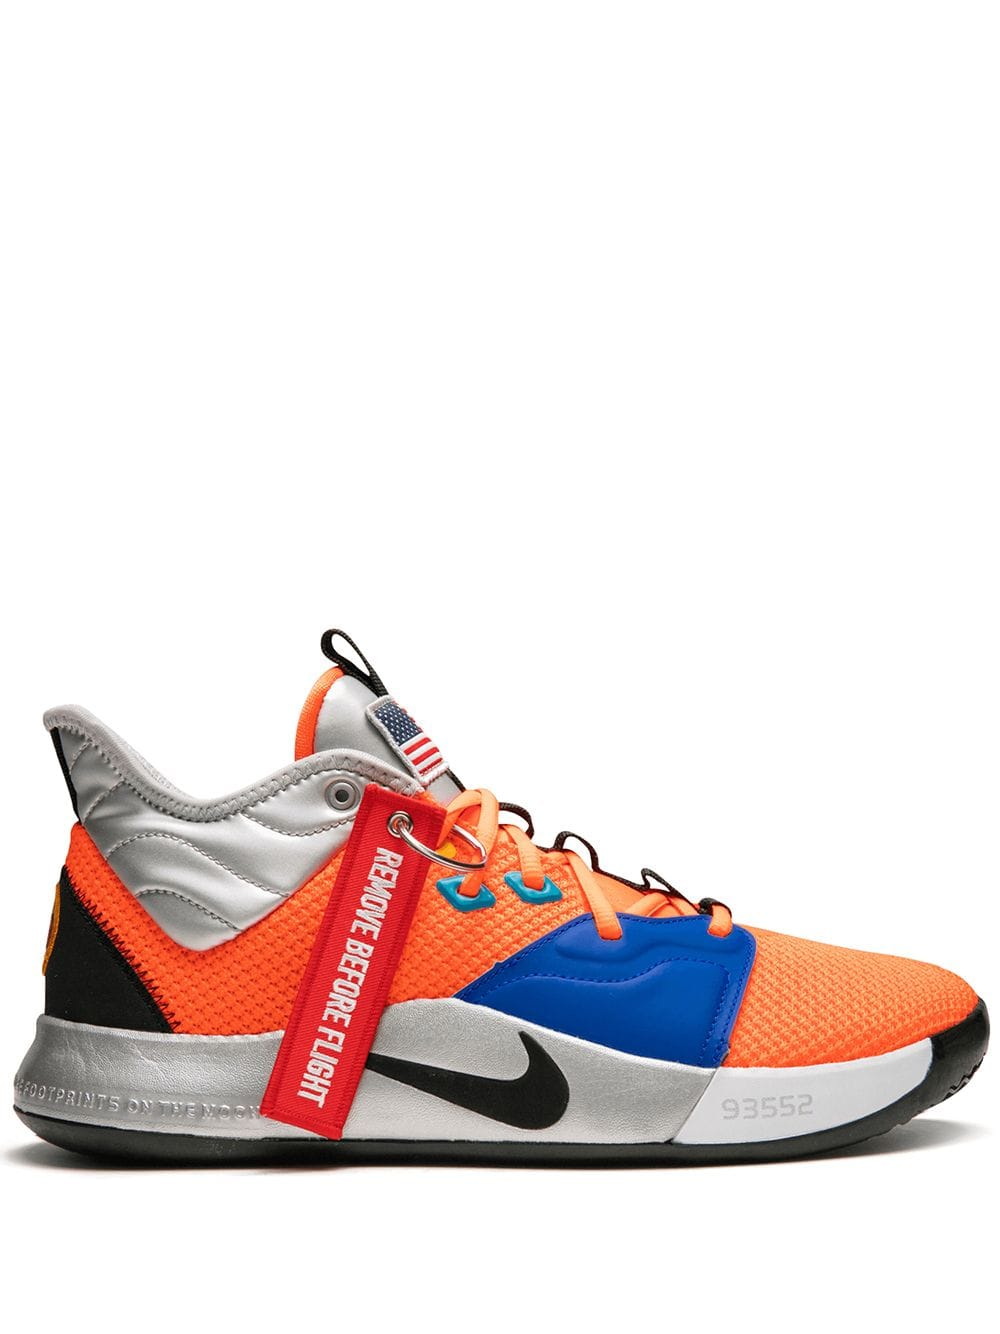 2c924d43e80d0 Nike PG 3 Special Box sneakers - Orange in 2019 | Products | Nike ...